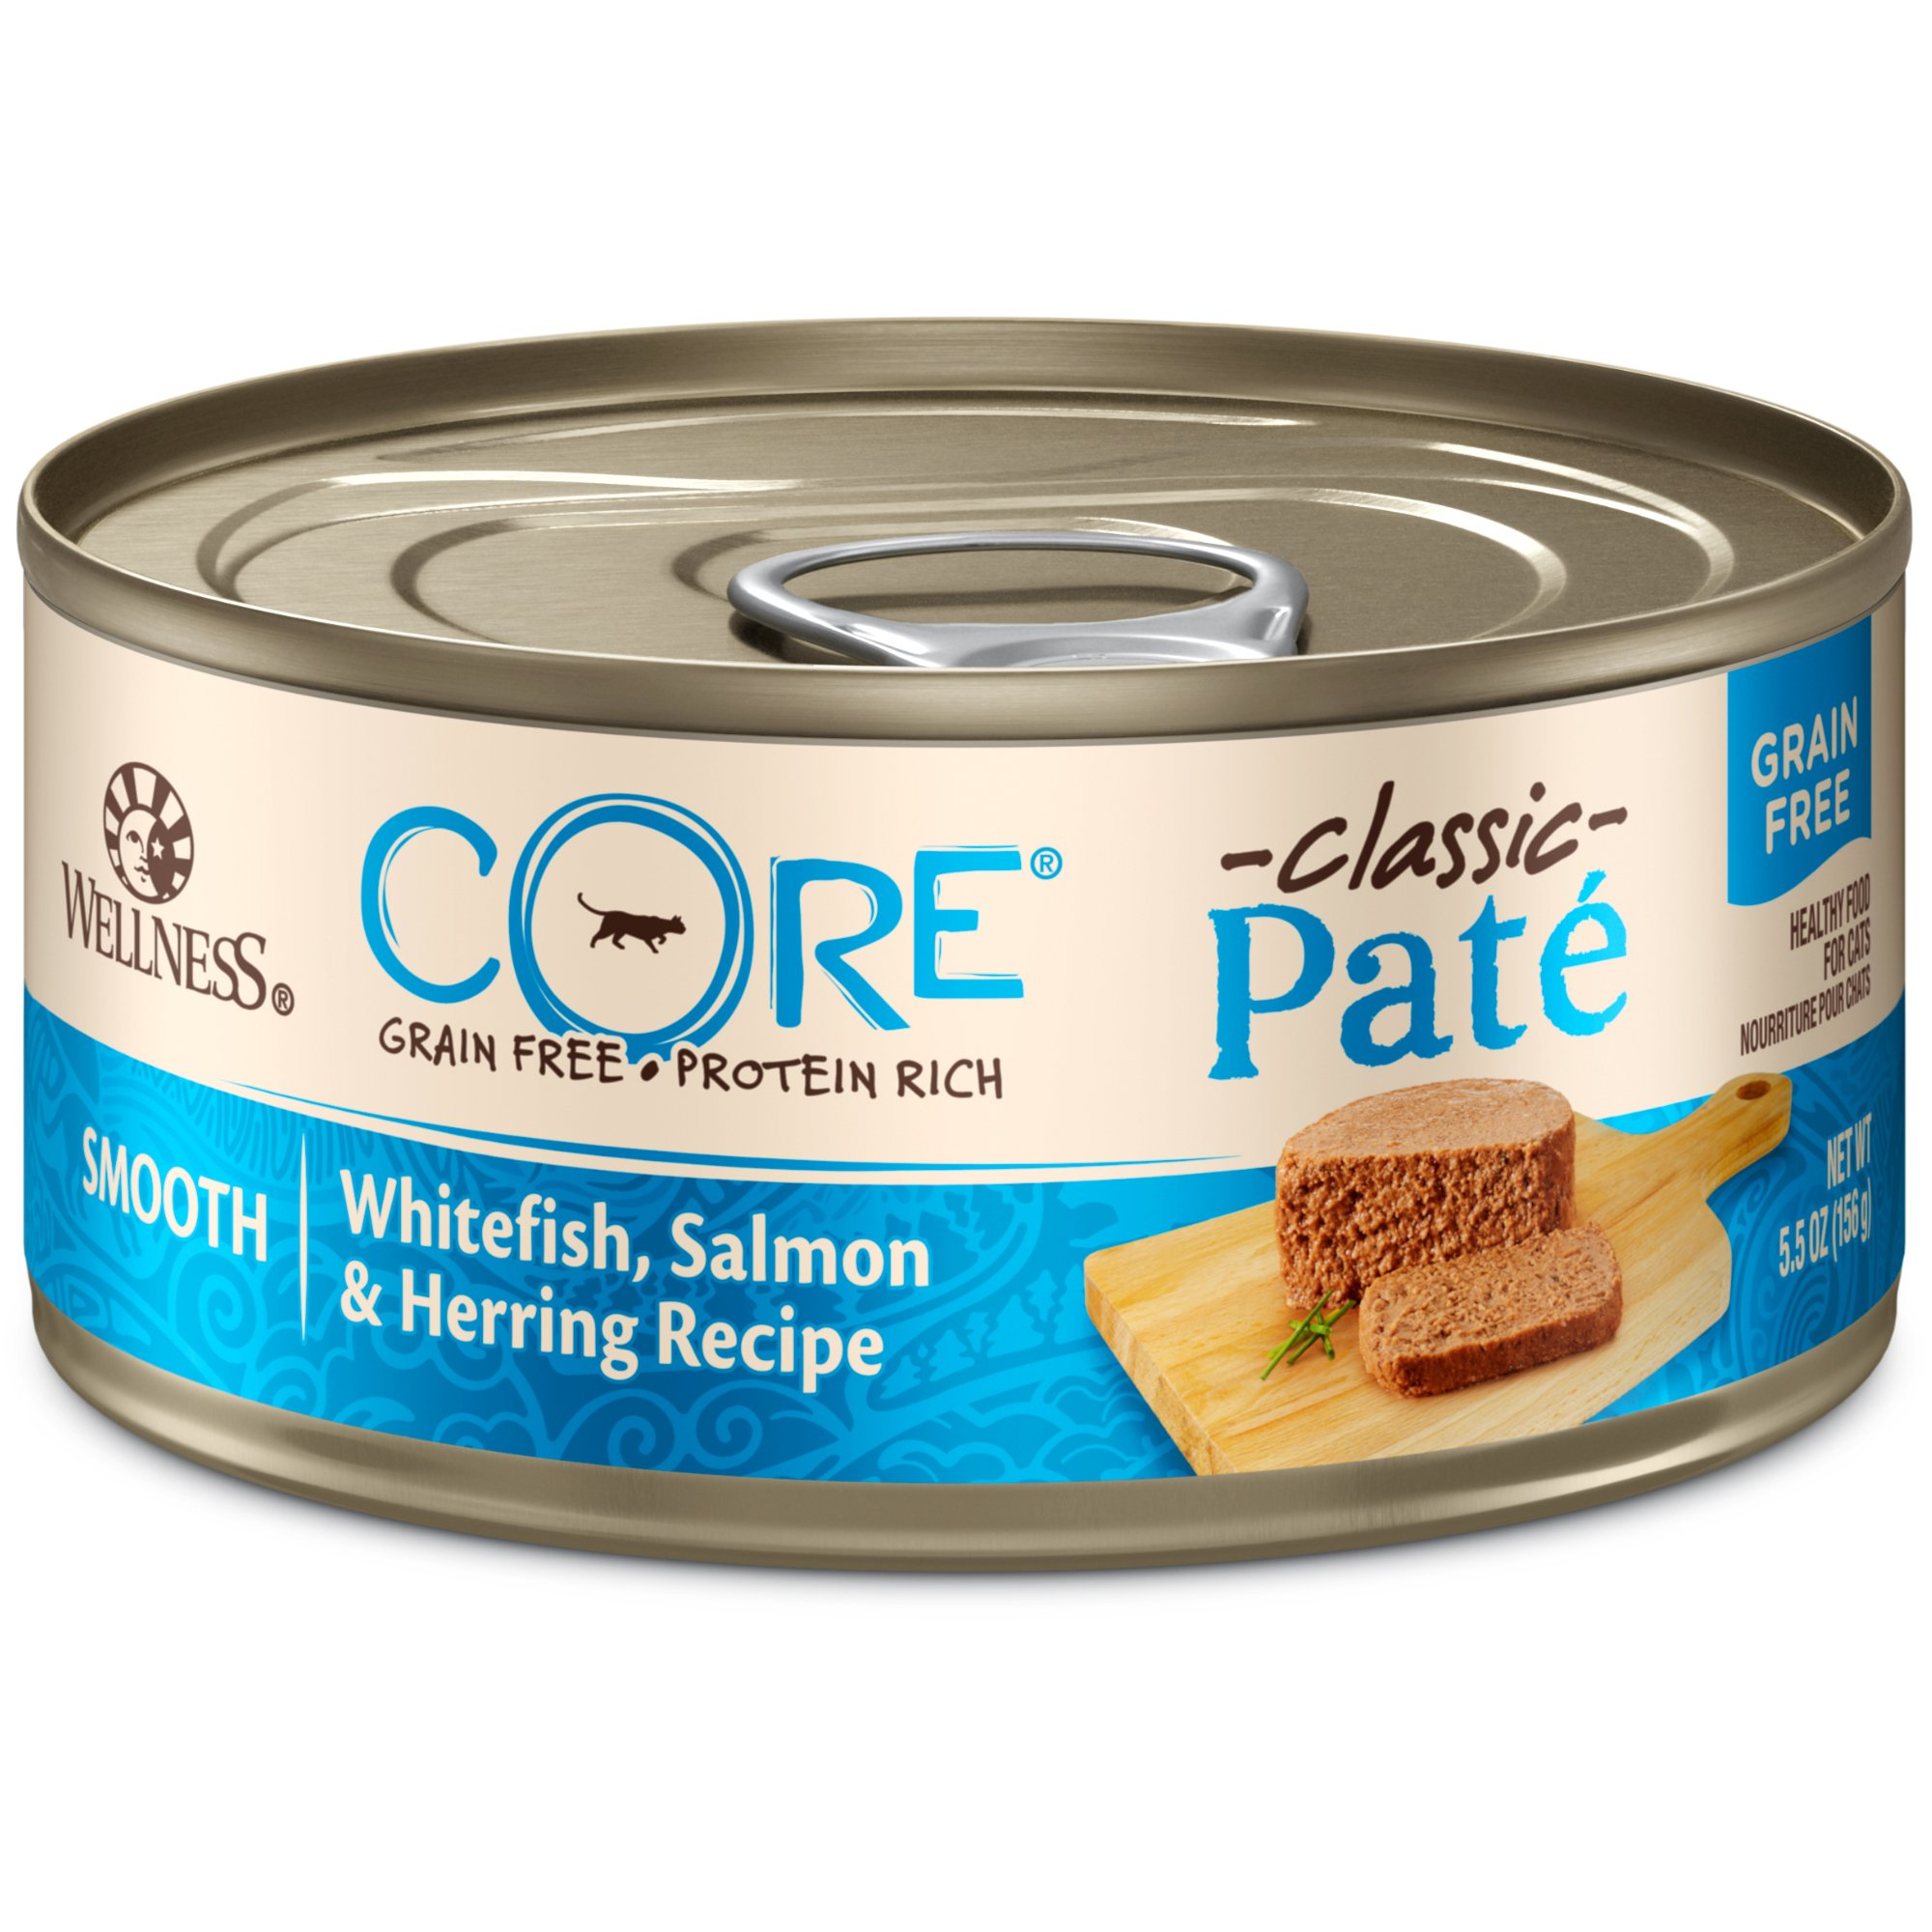 Wellness Core Natural Grain Free Wet Canned Cat Food, Whitefish, Salmon & Herring, 5.5-Ounce Can , Pack Of 24 by WELLNESS CORE